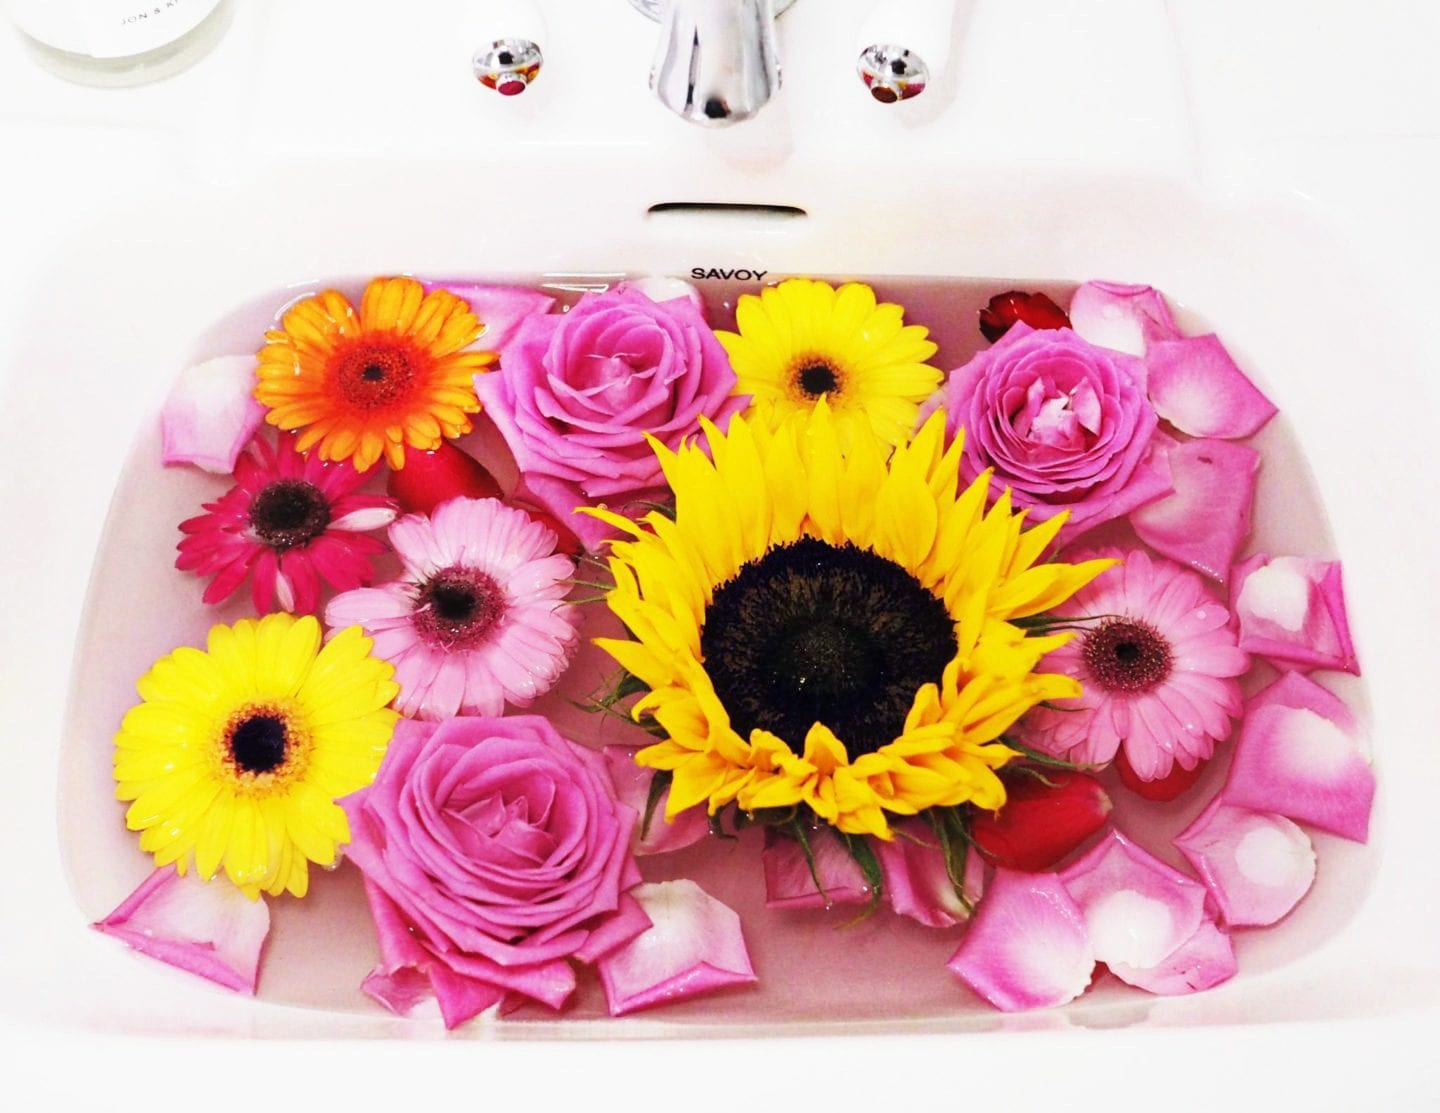 flowers-in-a-sink-colorful